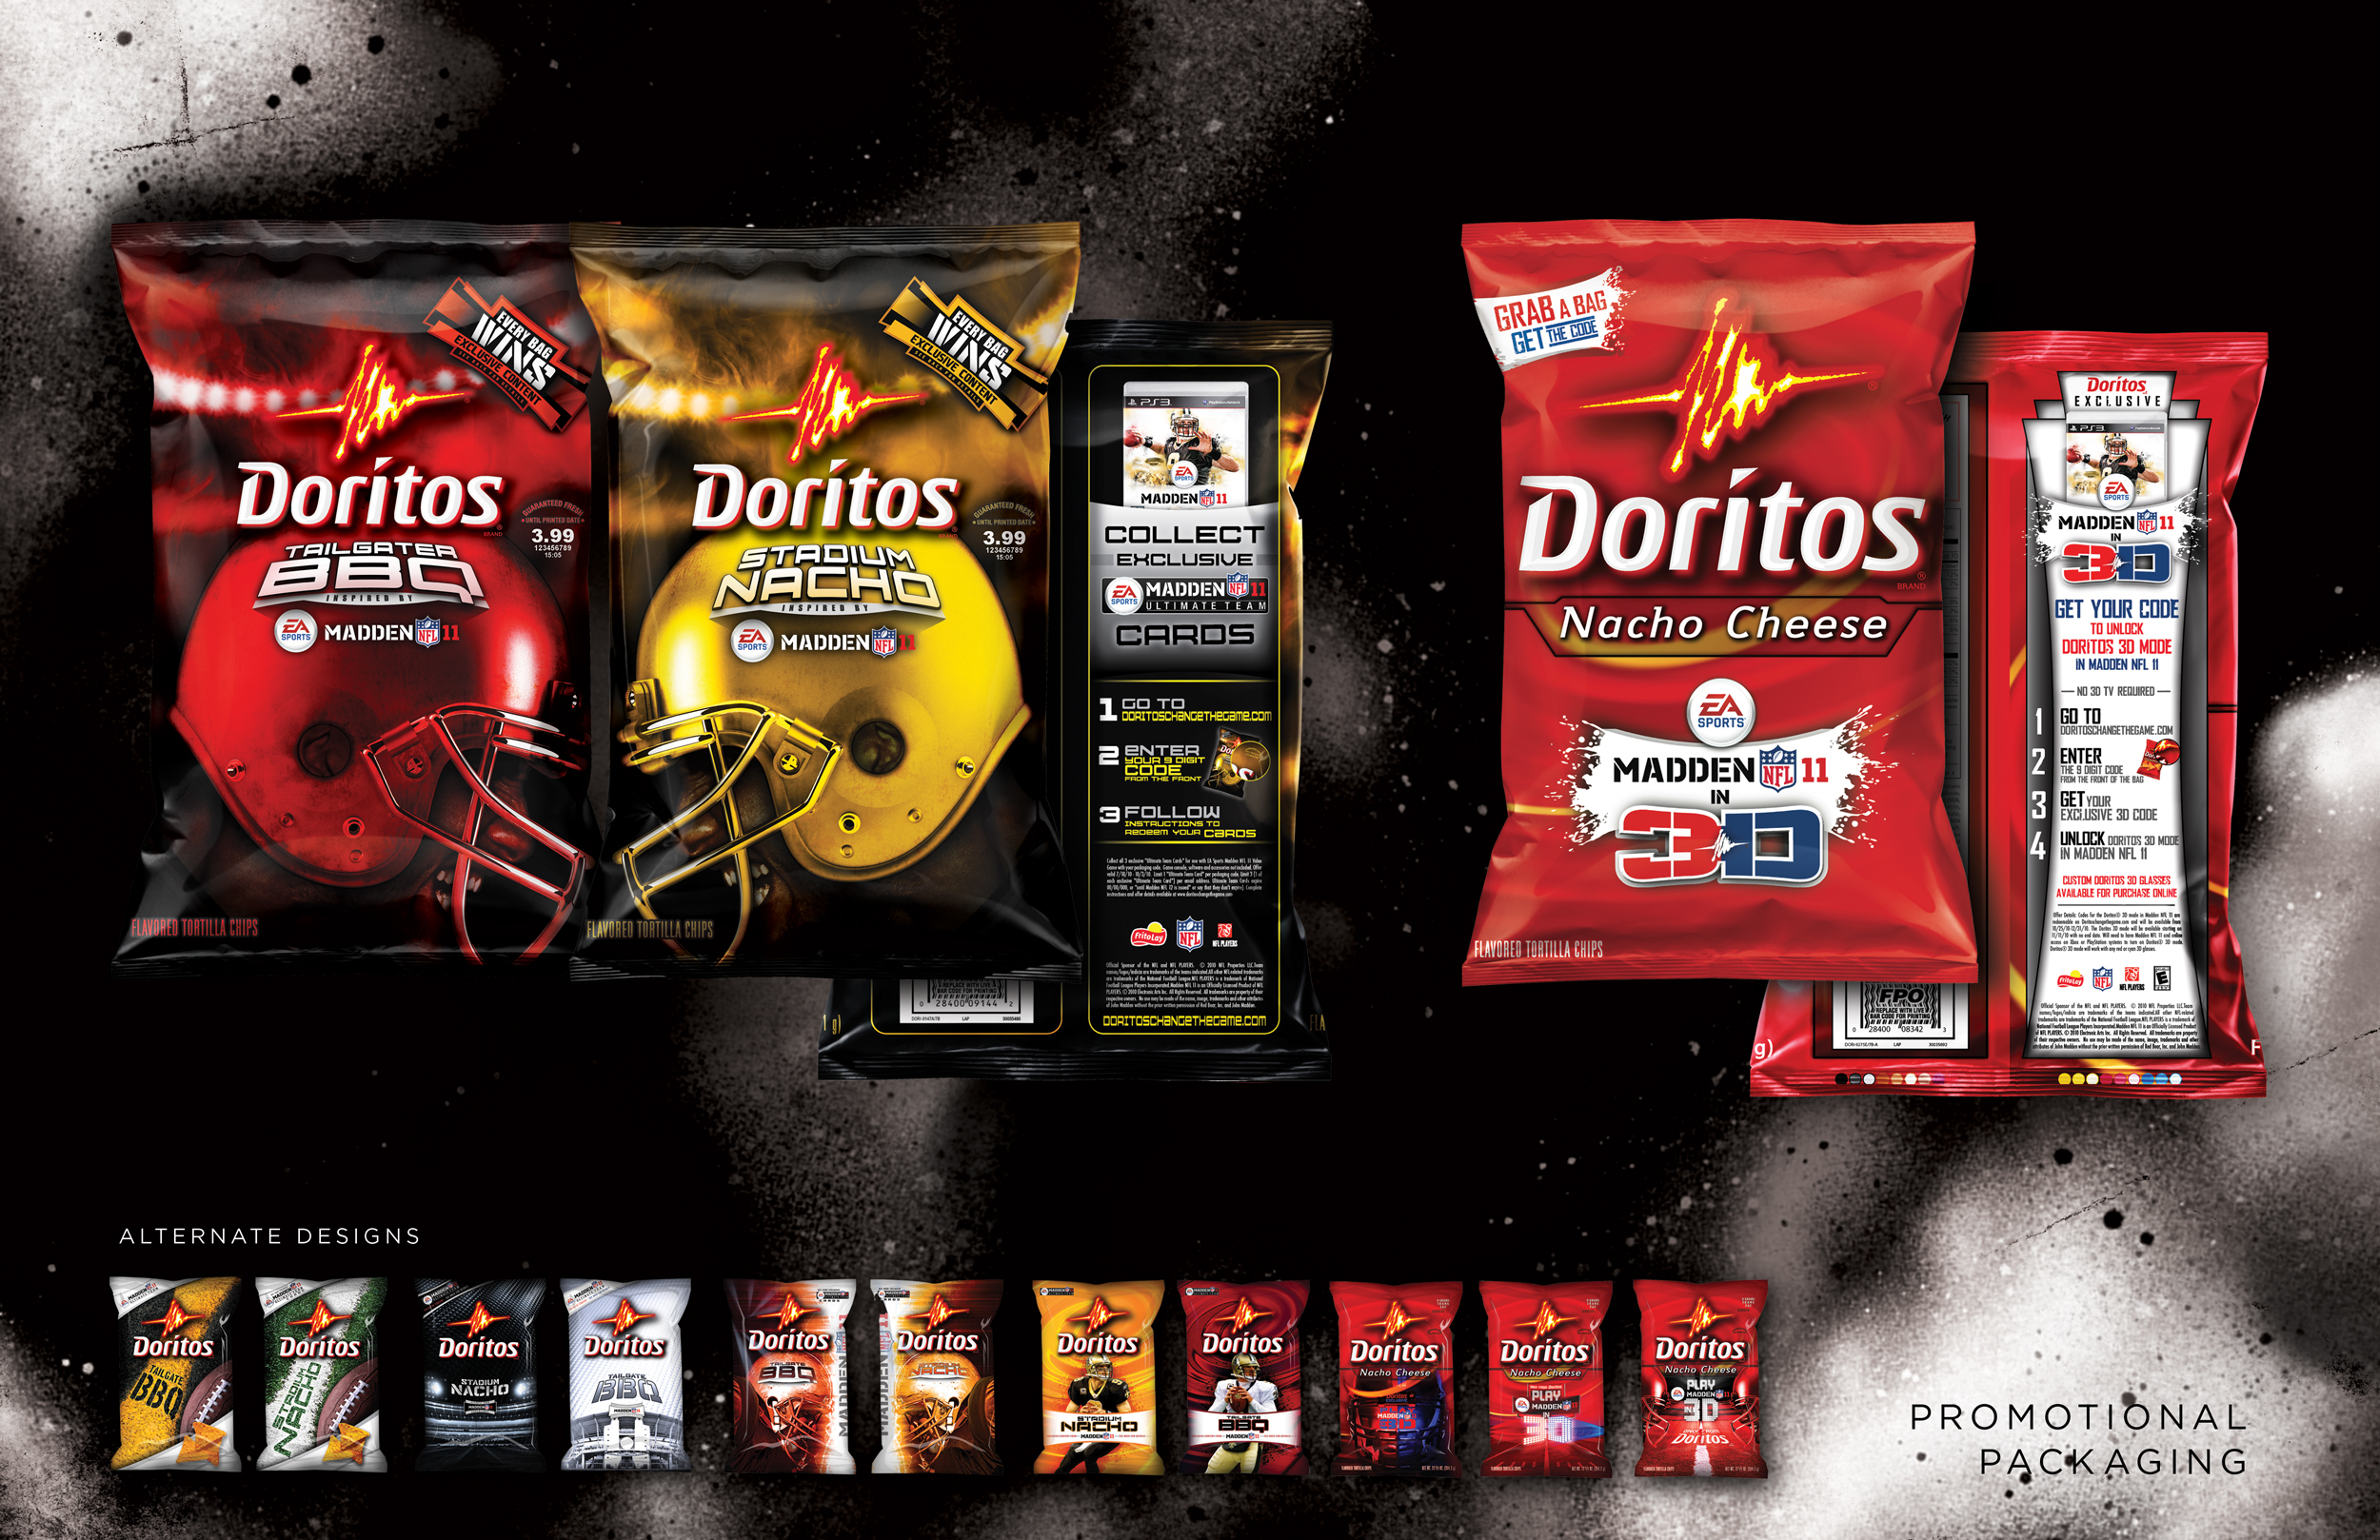 Doritos History. were doritos invented at disneyland ...